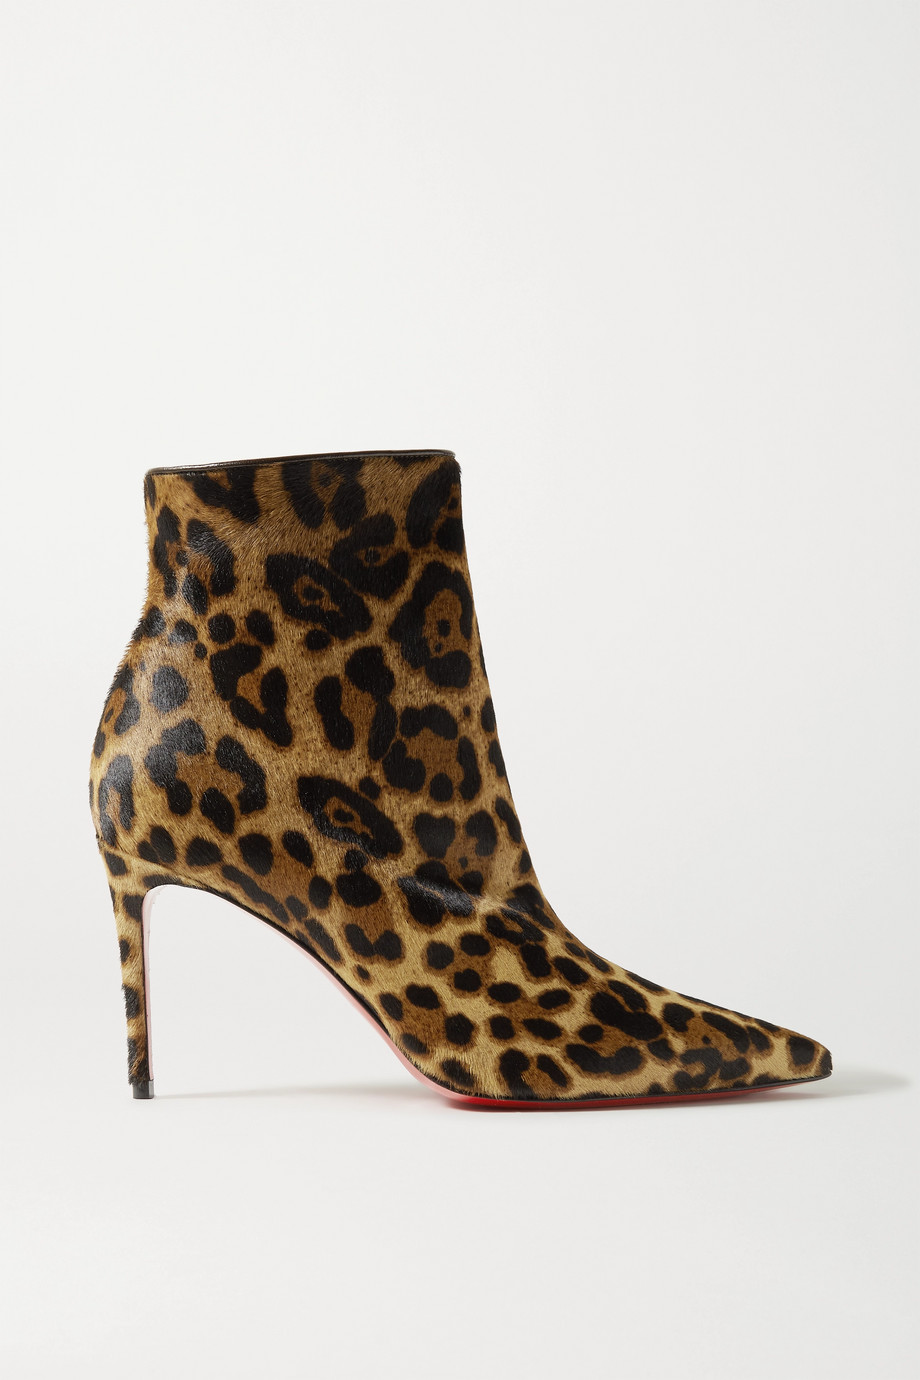 Christian Louboutin So Kate Booty 85 leopard-print calf hair ankle boots